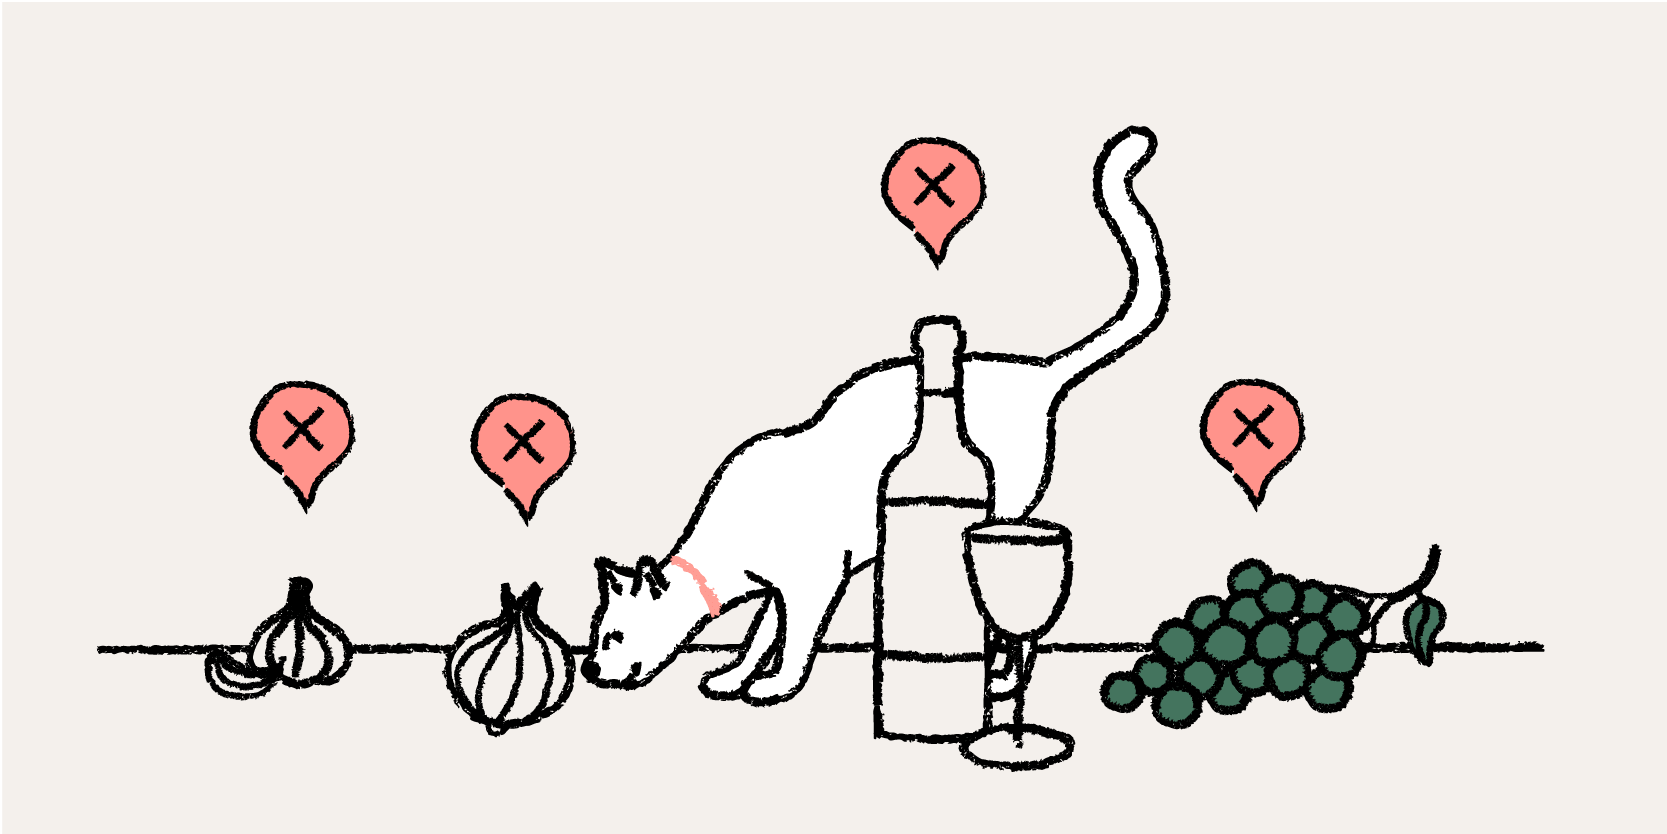 A cat sniffing an onion